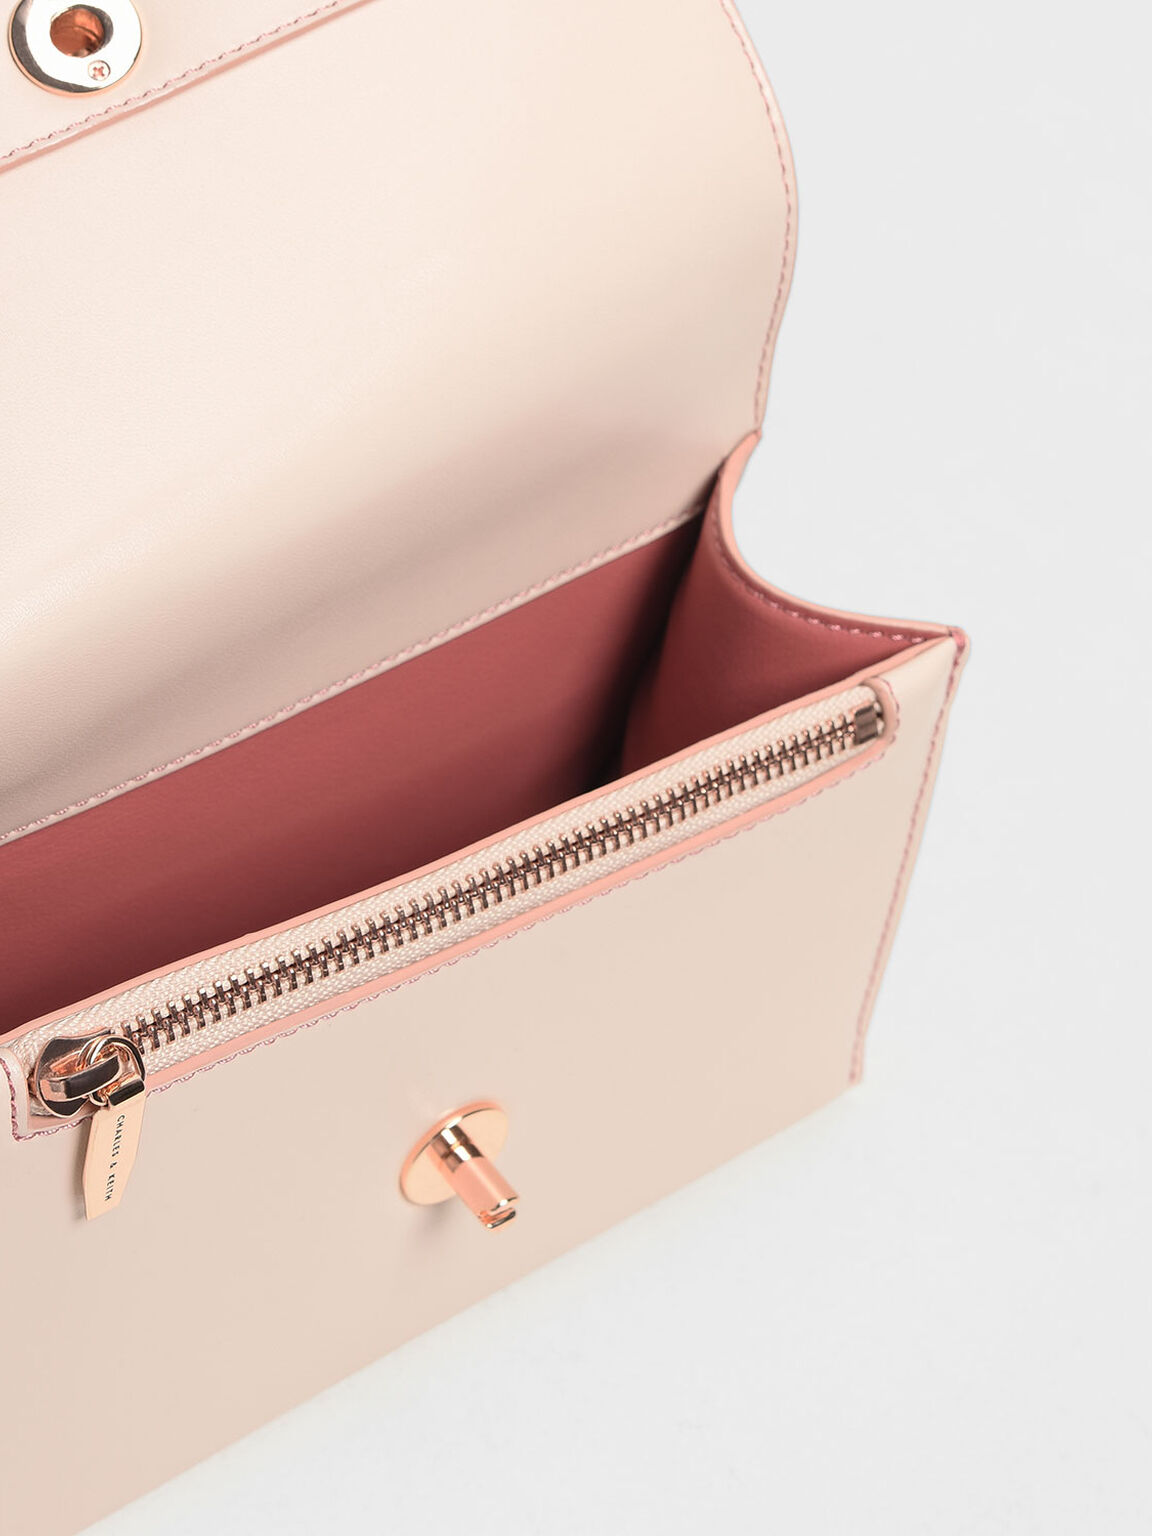 Chain & Strap Push Lock Shoulder Bag, Light Pink, hi-res